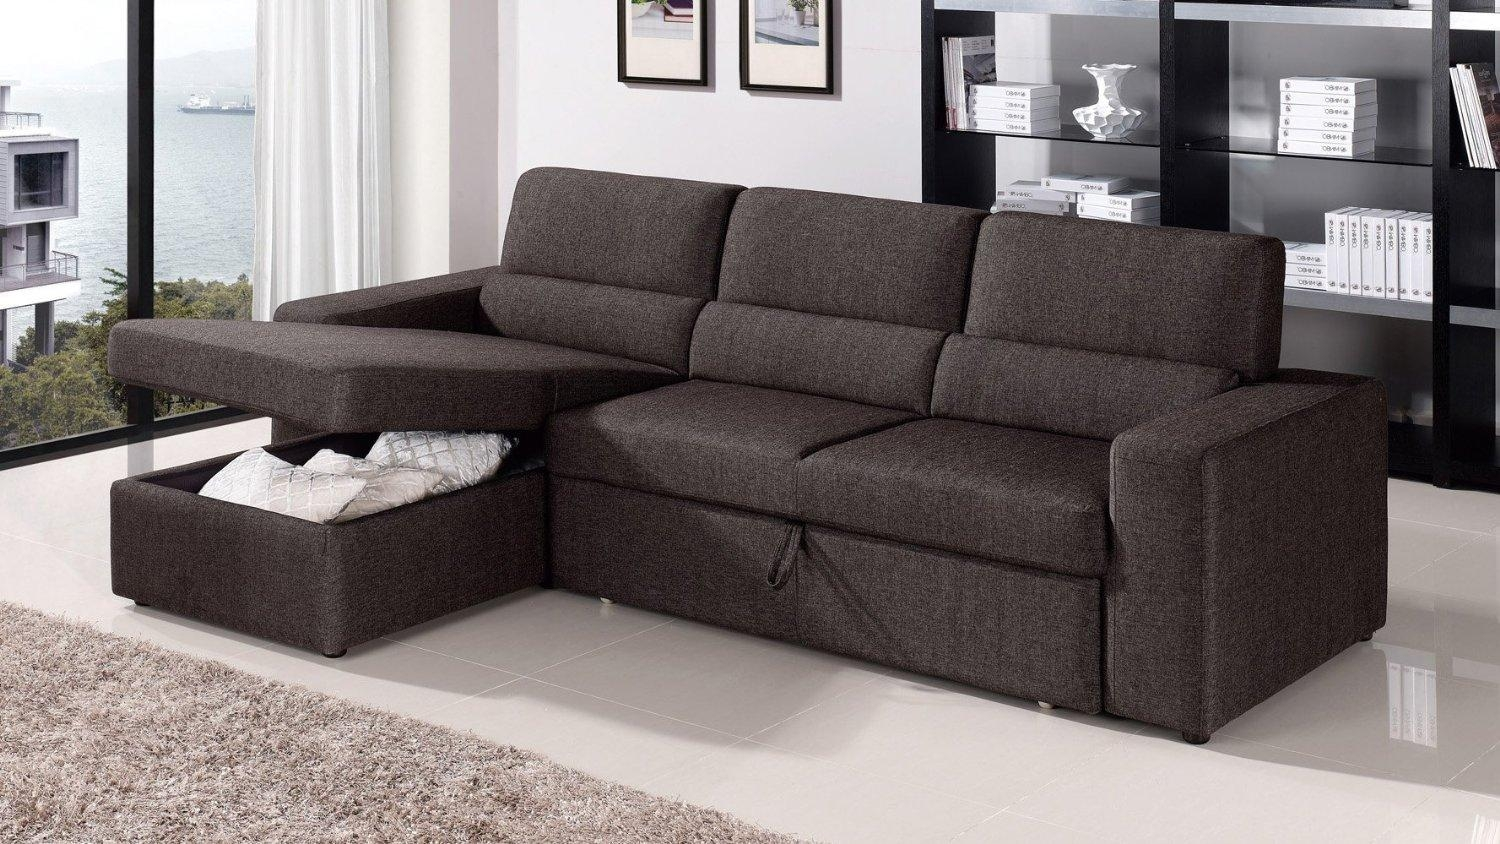 Sofa Sleeper Chaise – Leather Sectional Sofa For Sleeper Recliner Sectional (View 8 of 20)